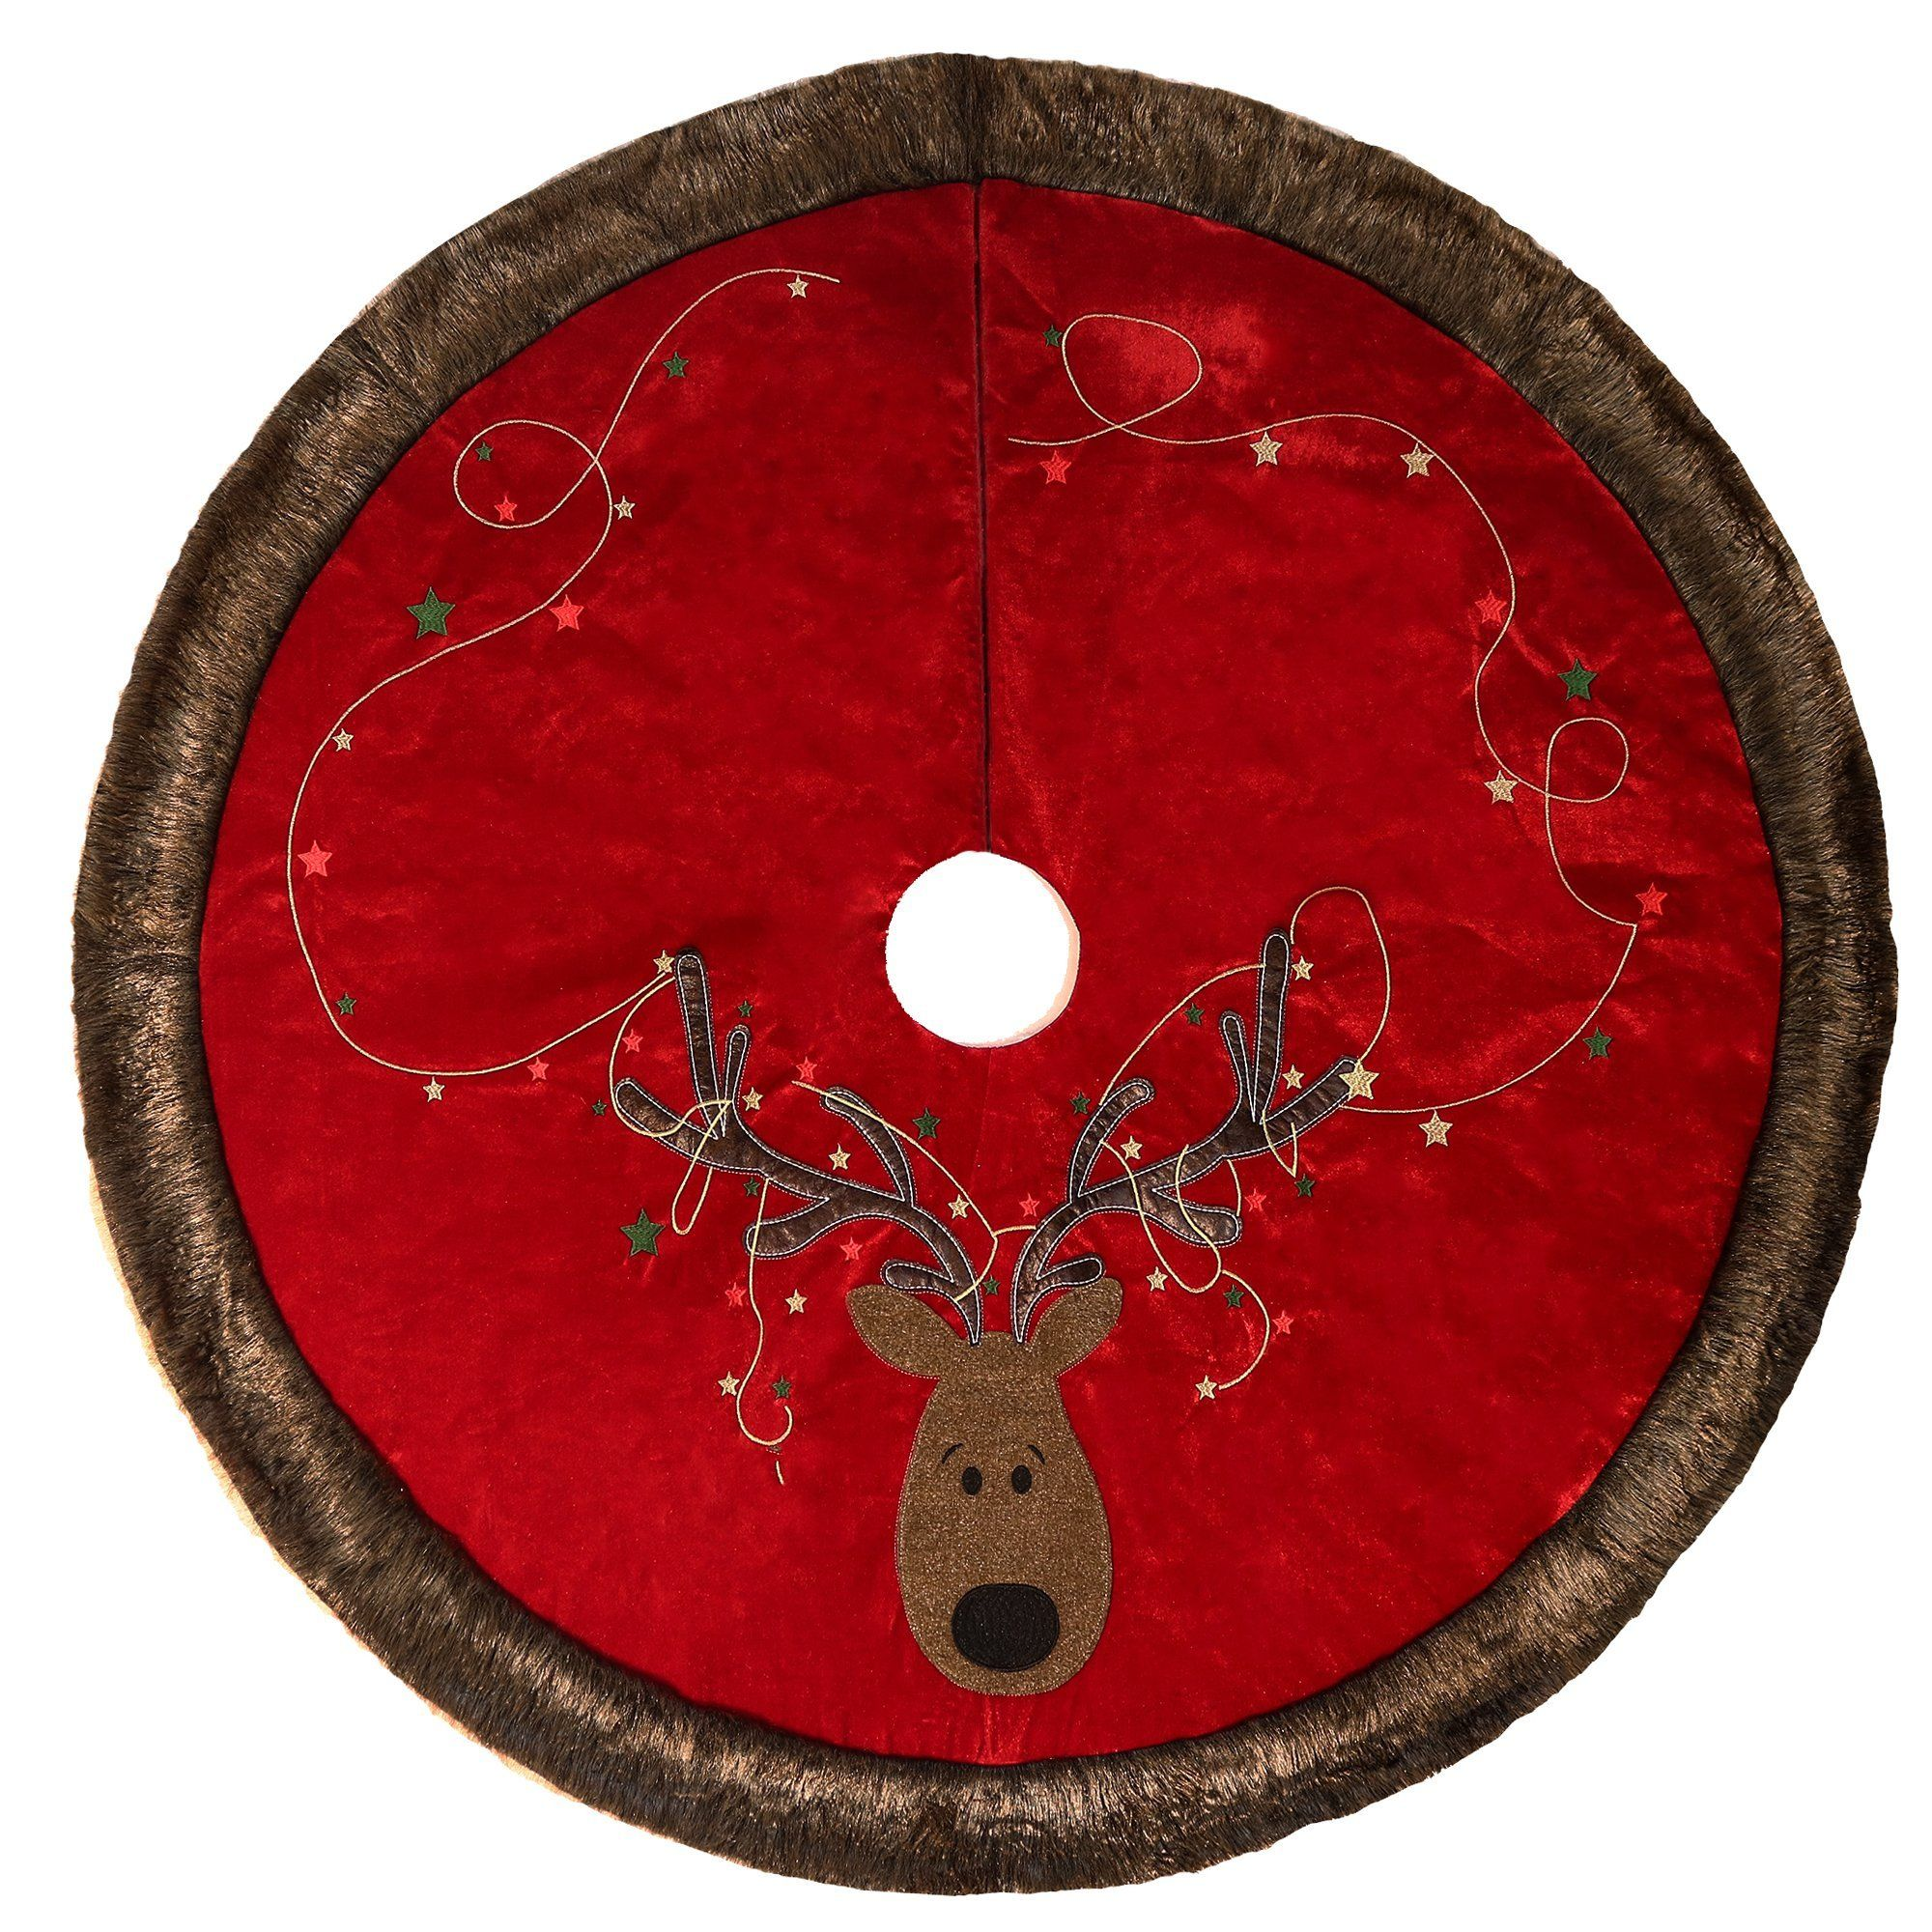 VandM VALERY MADELYN 48 Reindeer Christmas Tree Skirt with